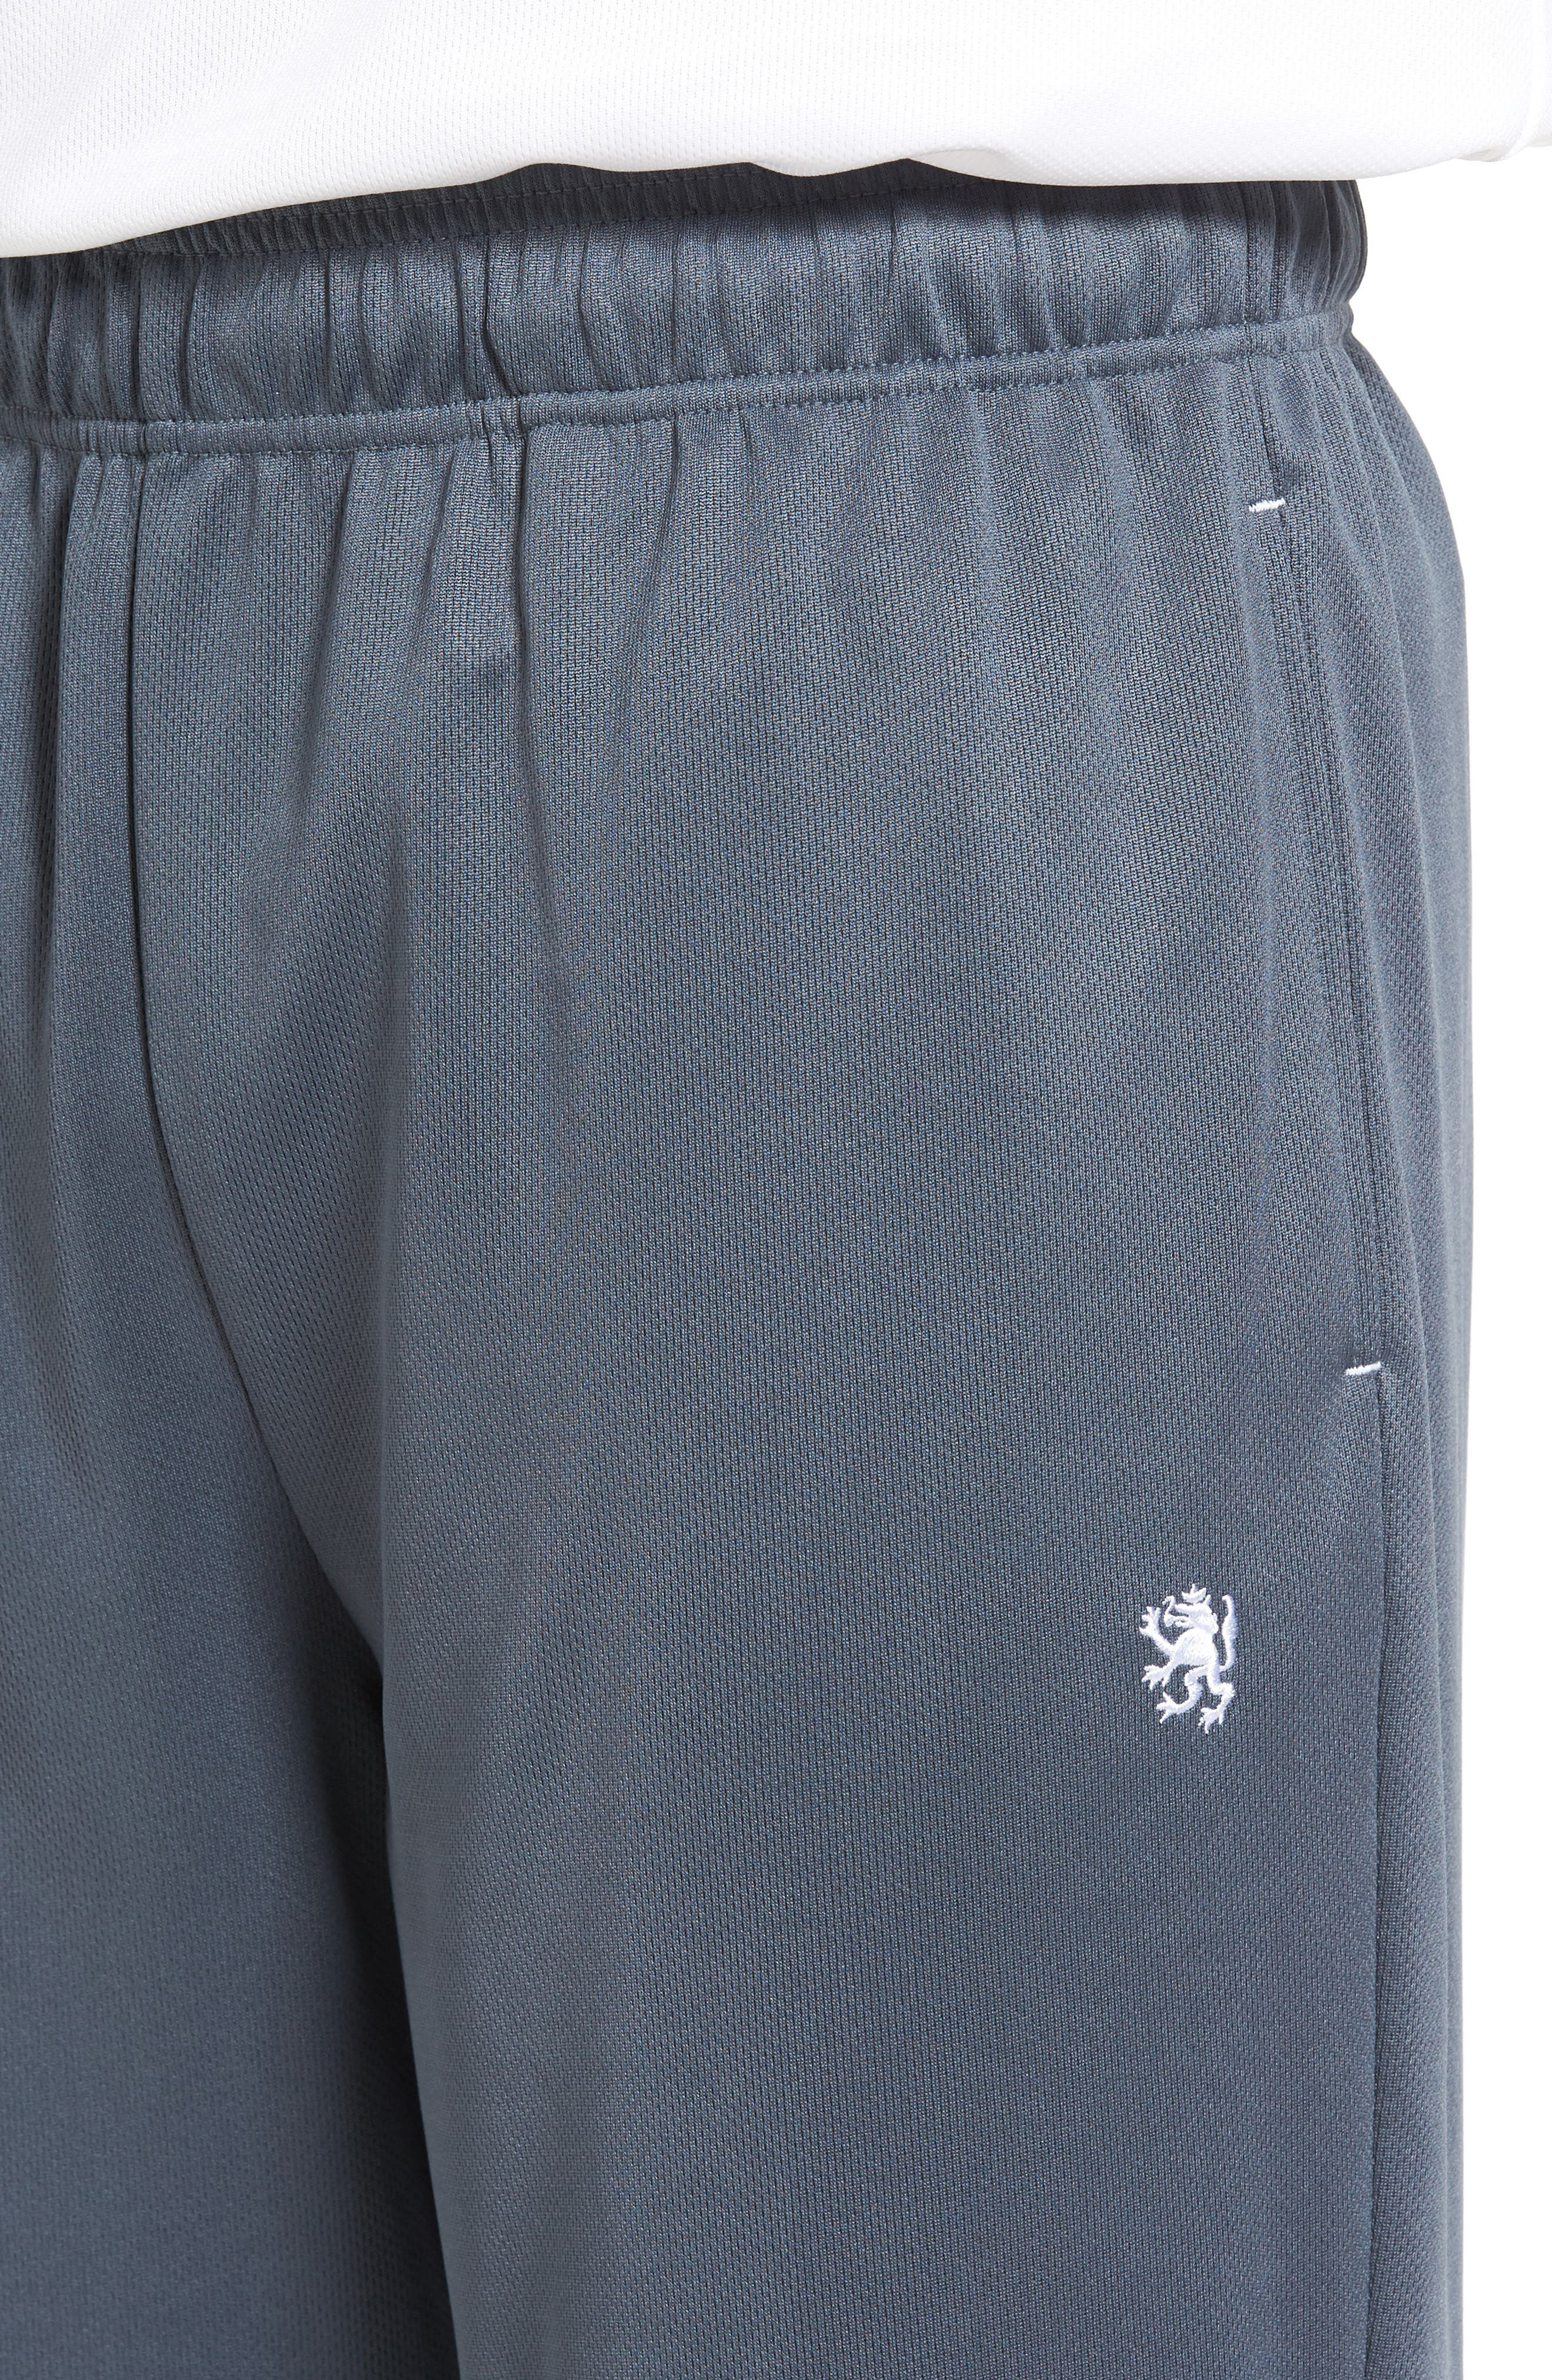 Work Out Lounge Pants,                             Alternate thumbnail 11, color,